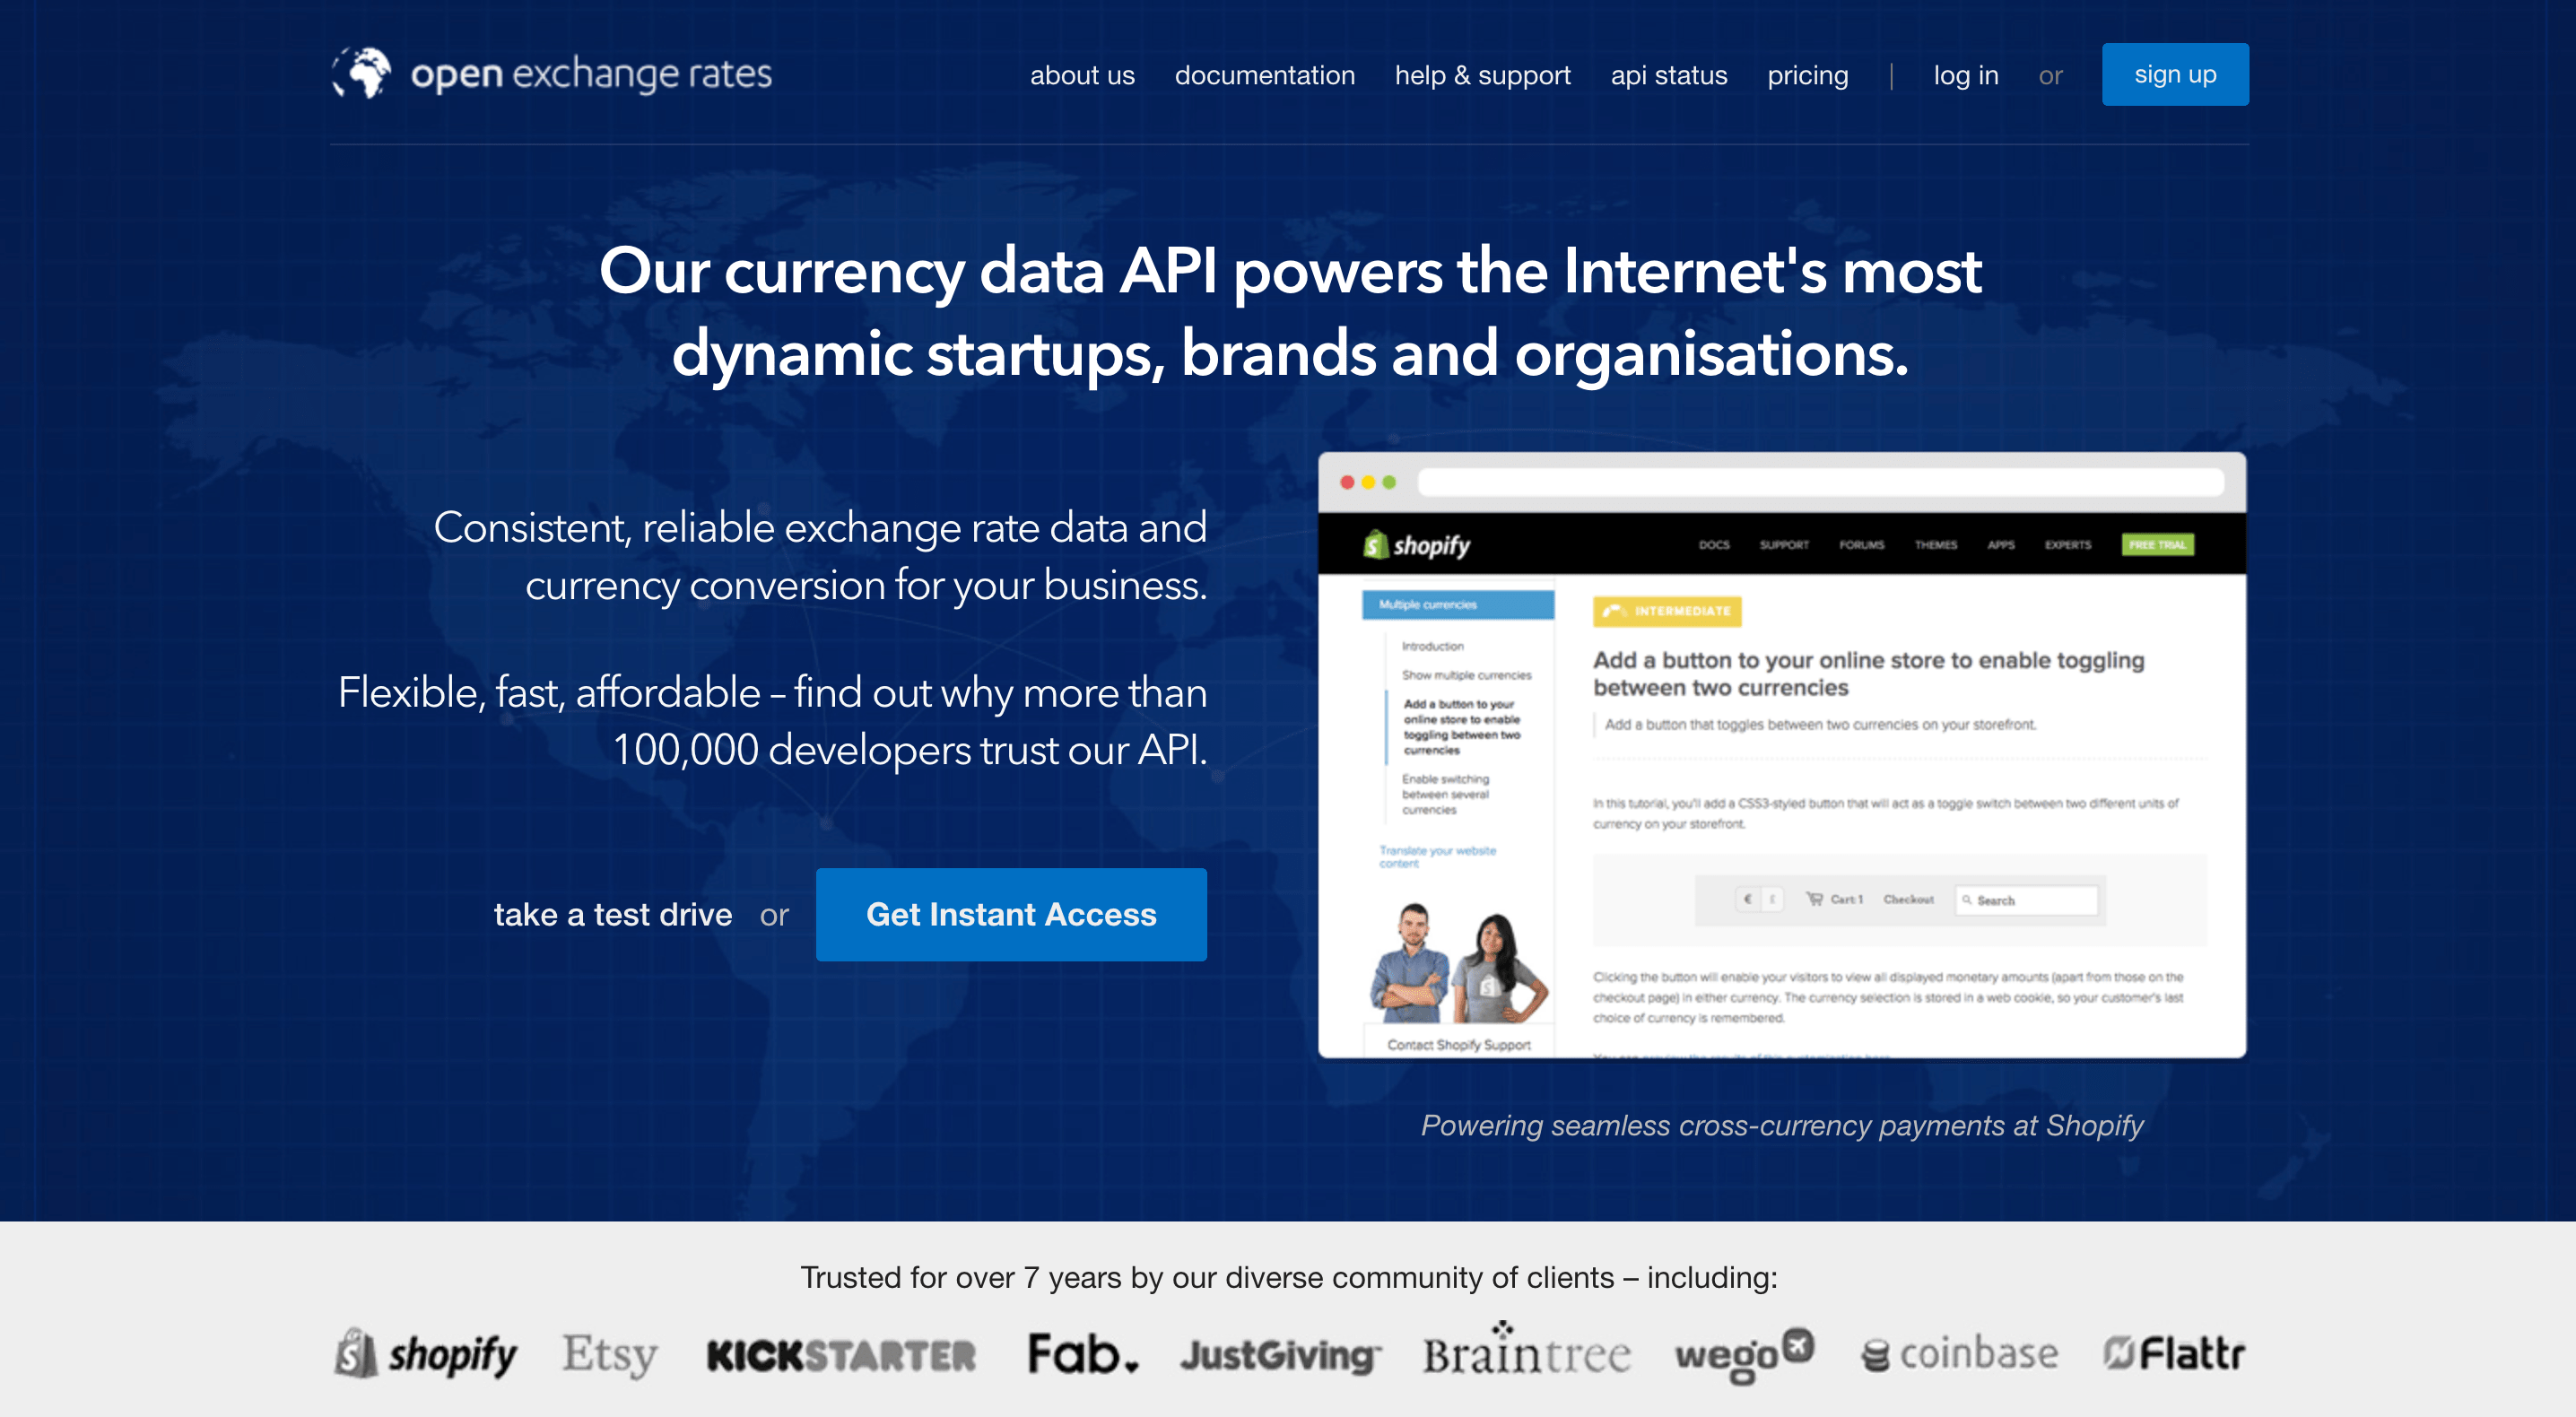 Open Exchange Rates apis used by